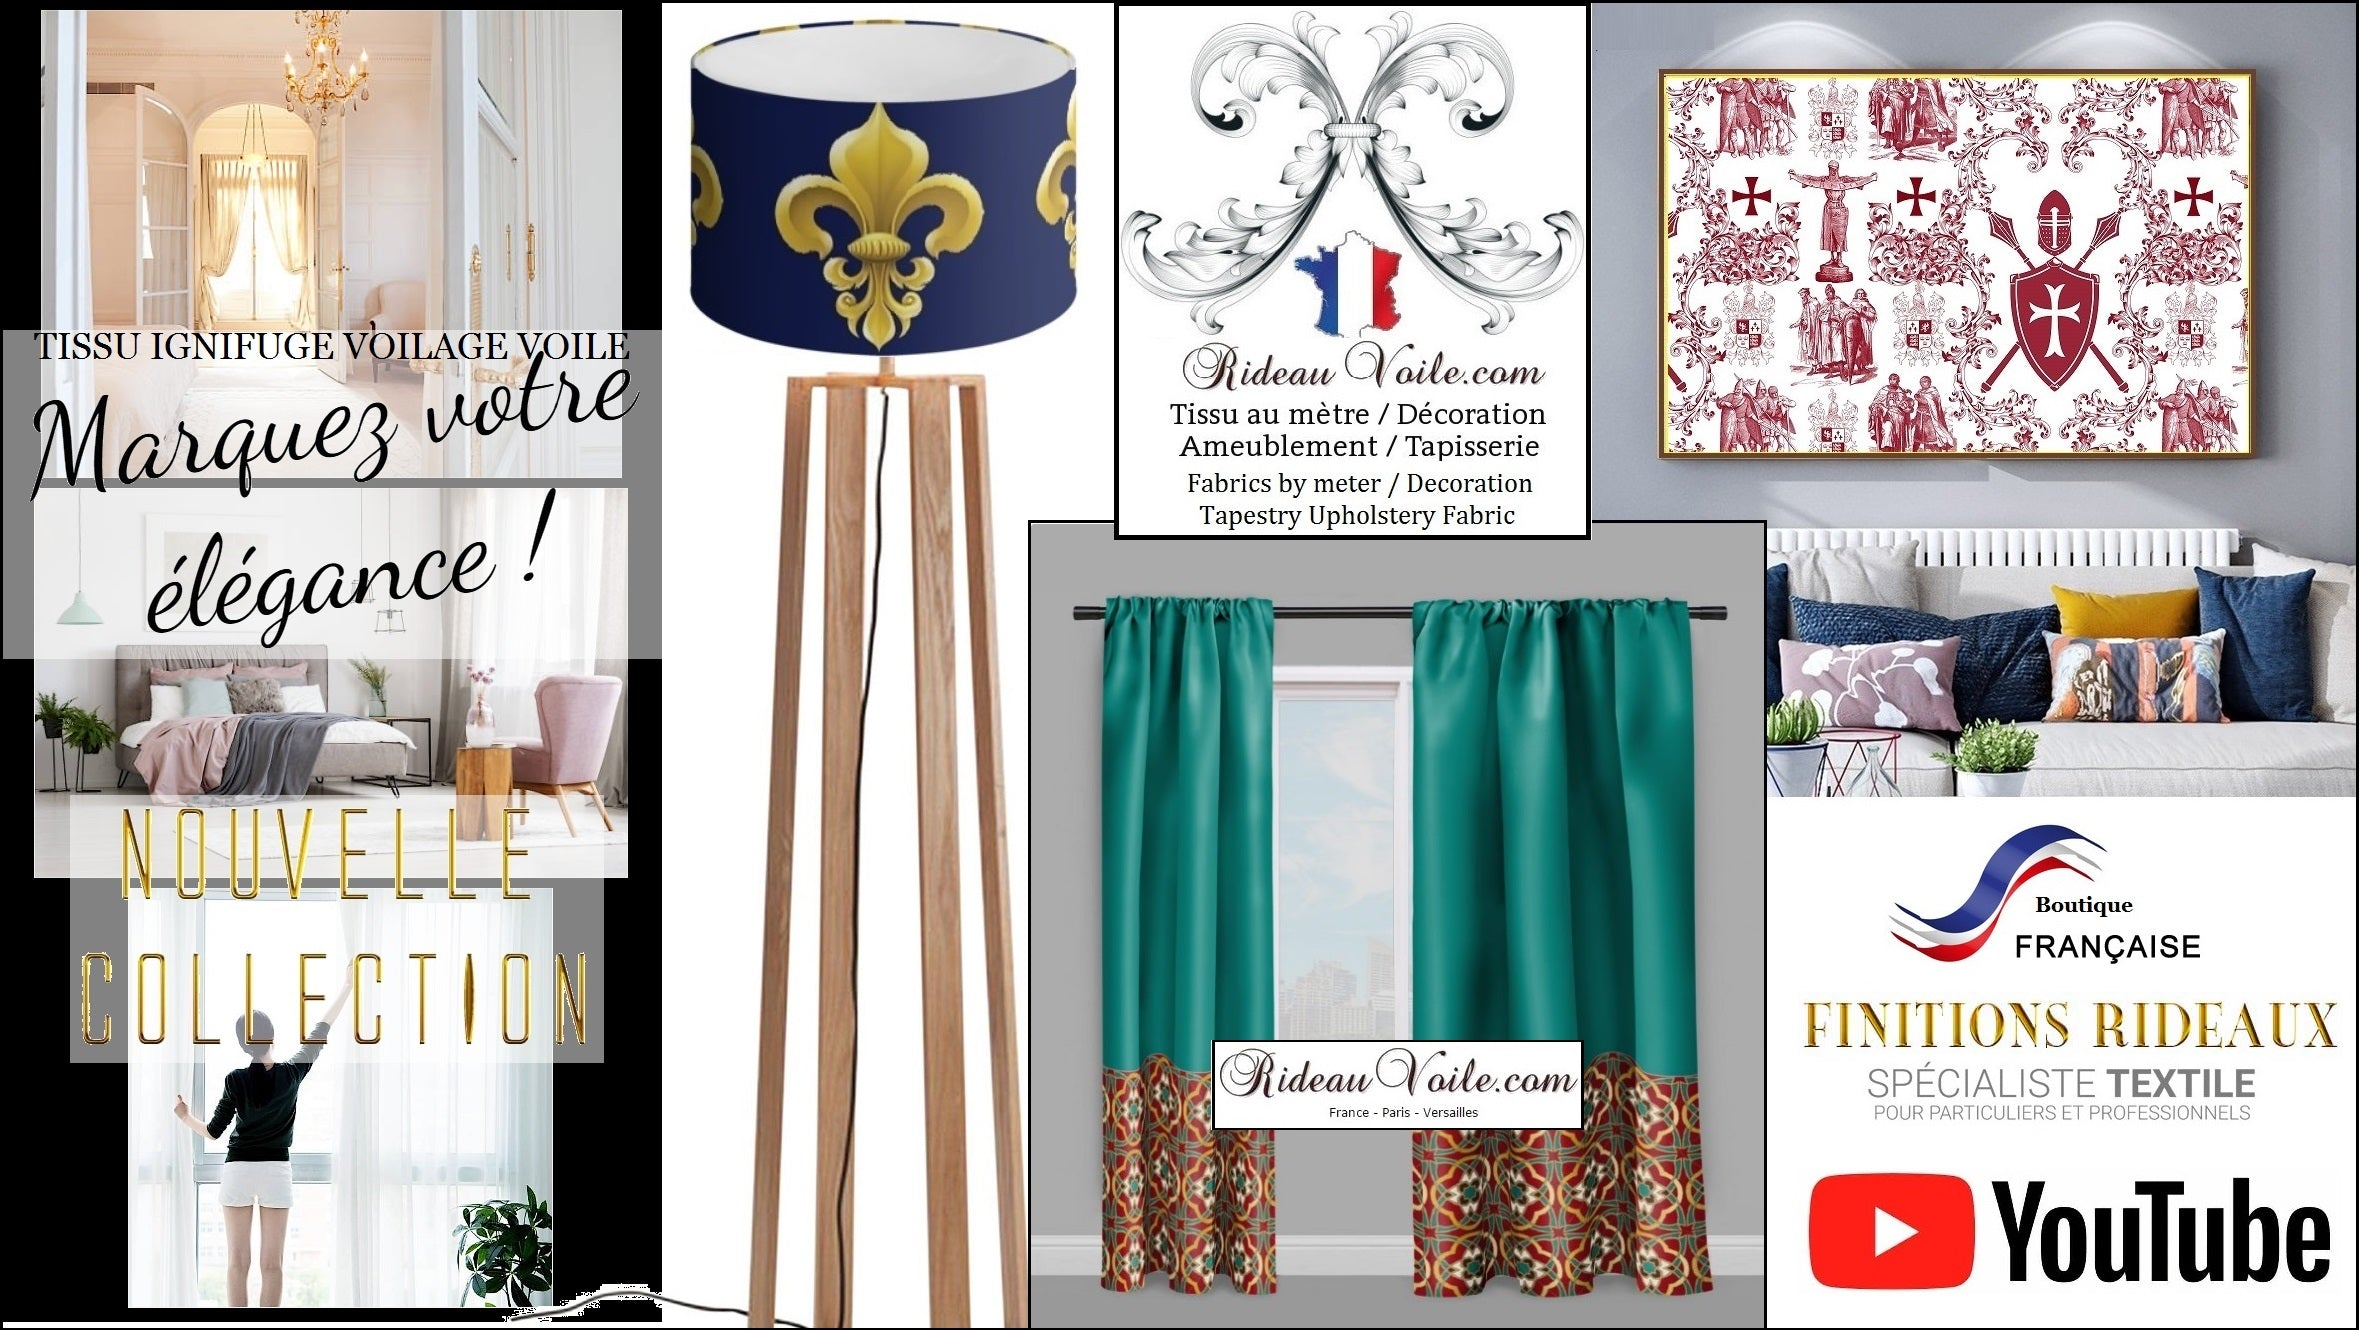 Rideauvoile store shop Paris Versailles French luxury fabrics upholstery furnishing meter decorating home room Top billing Empire